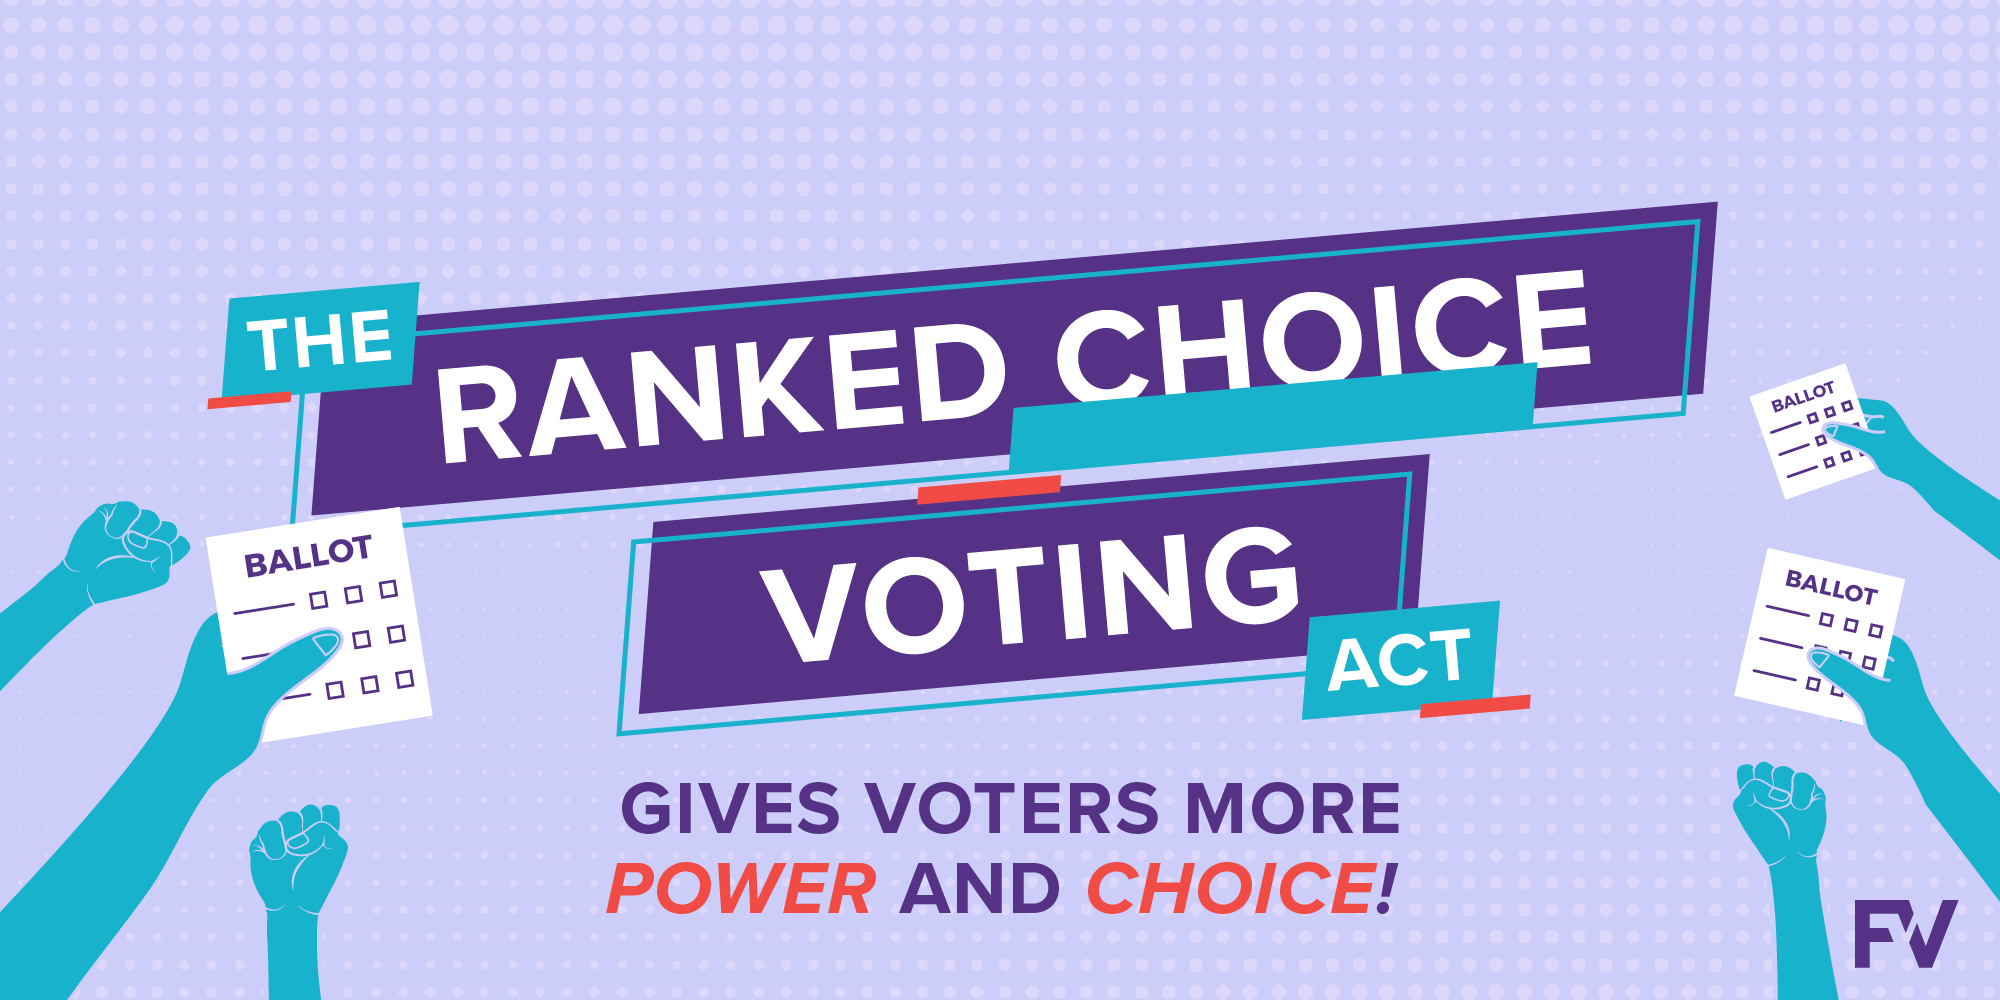 The Ranked Choice Voting Act